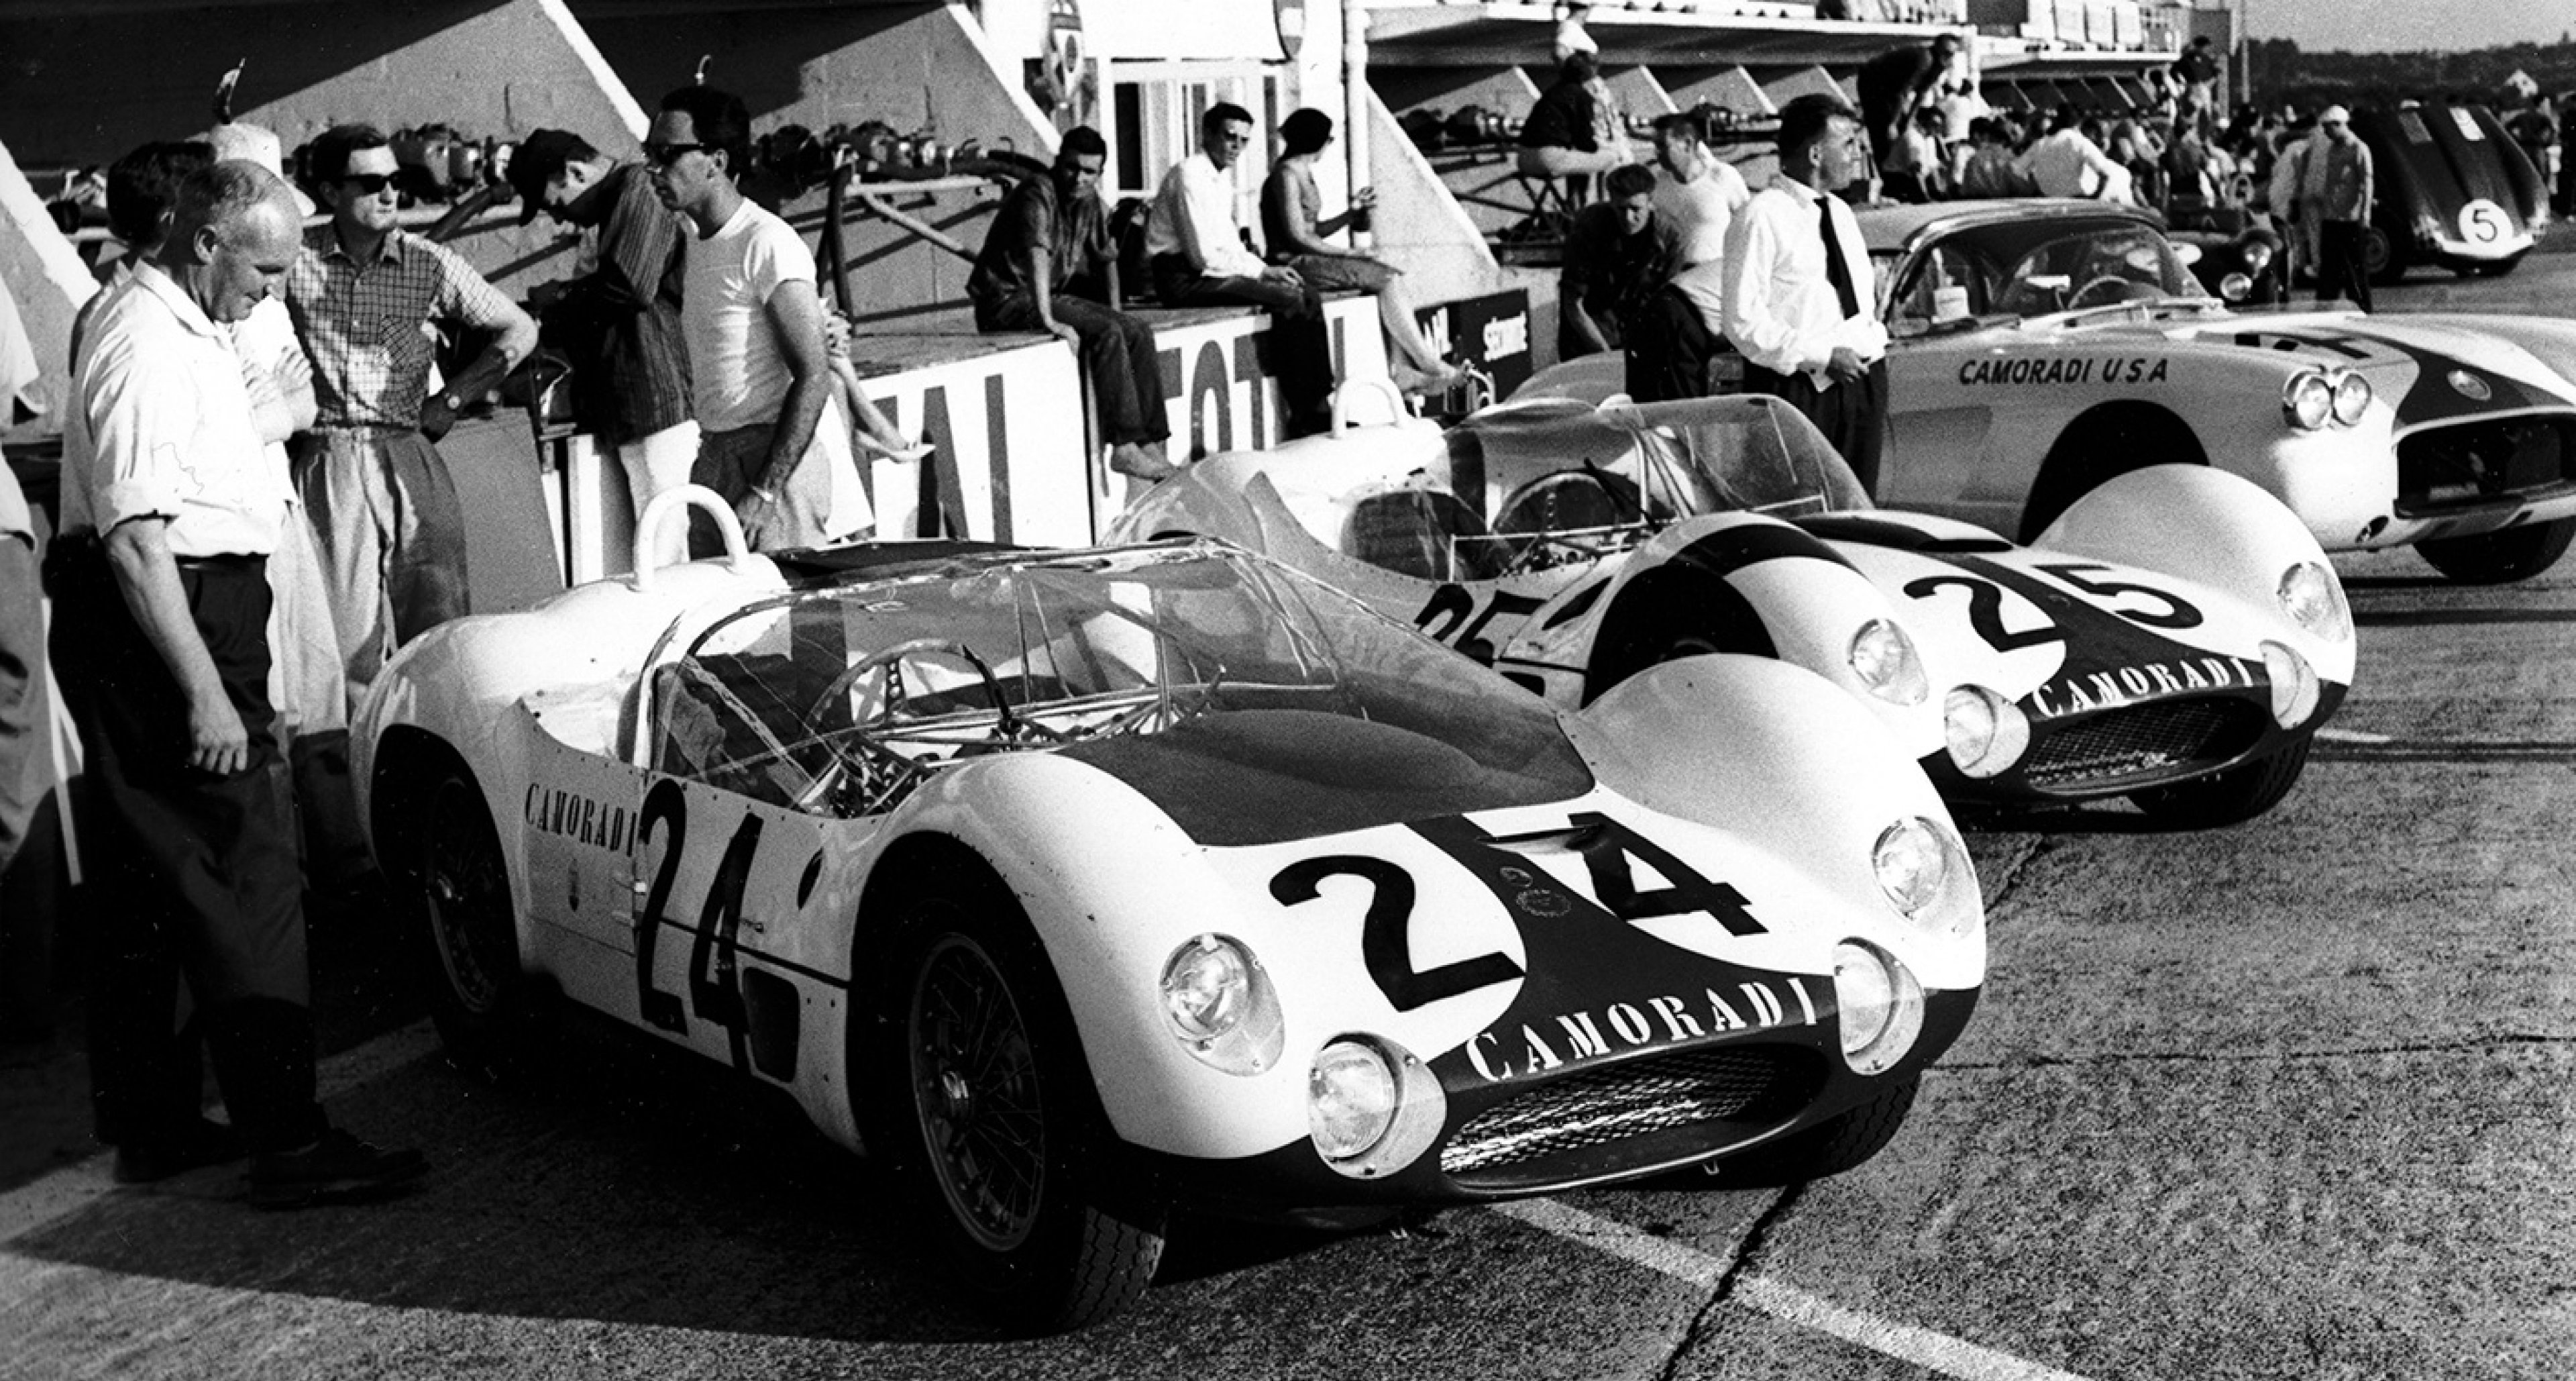 Le Mans, 1960. A pair of Scuderia Camoradi Tipo 61 Birdcages and the team's Corvette